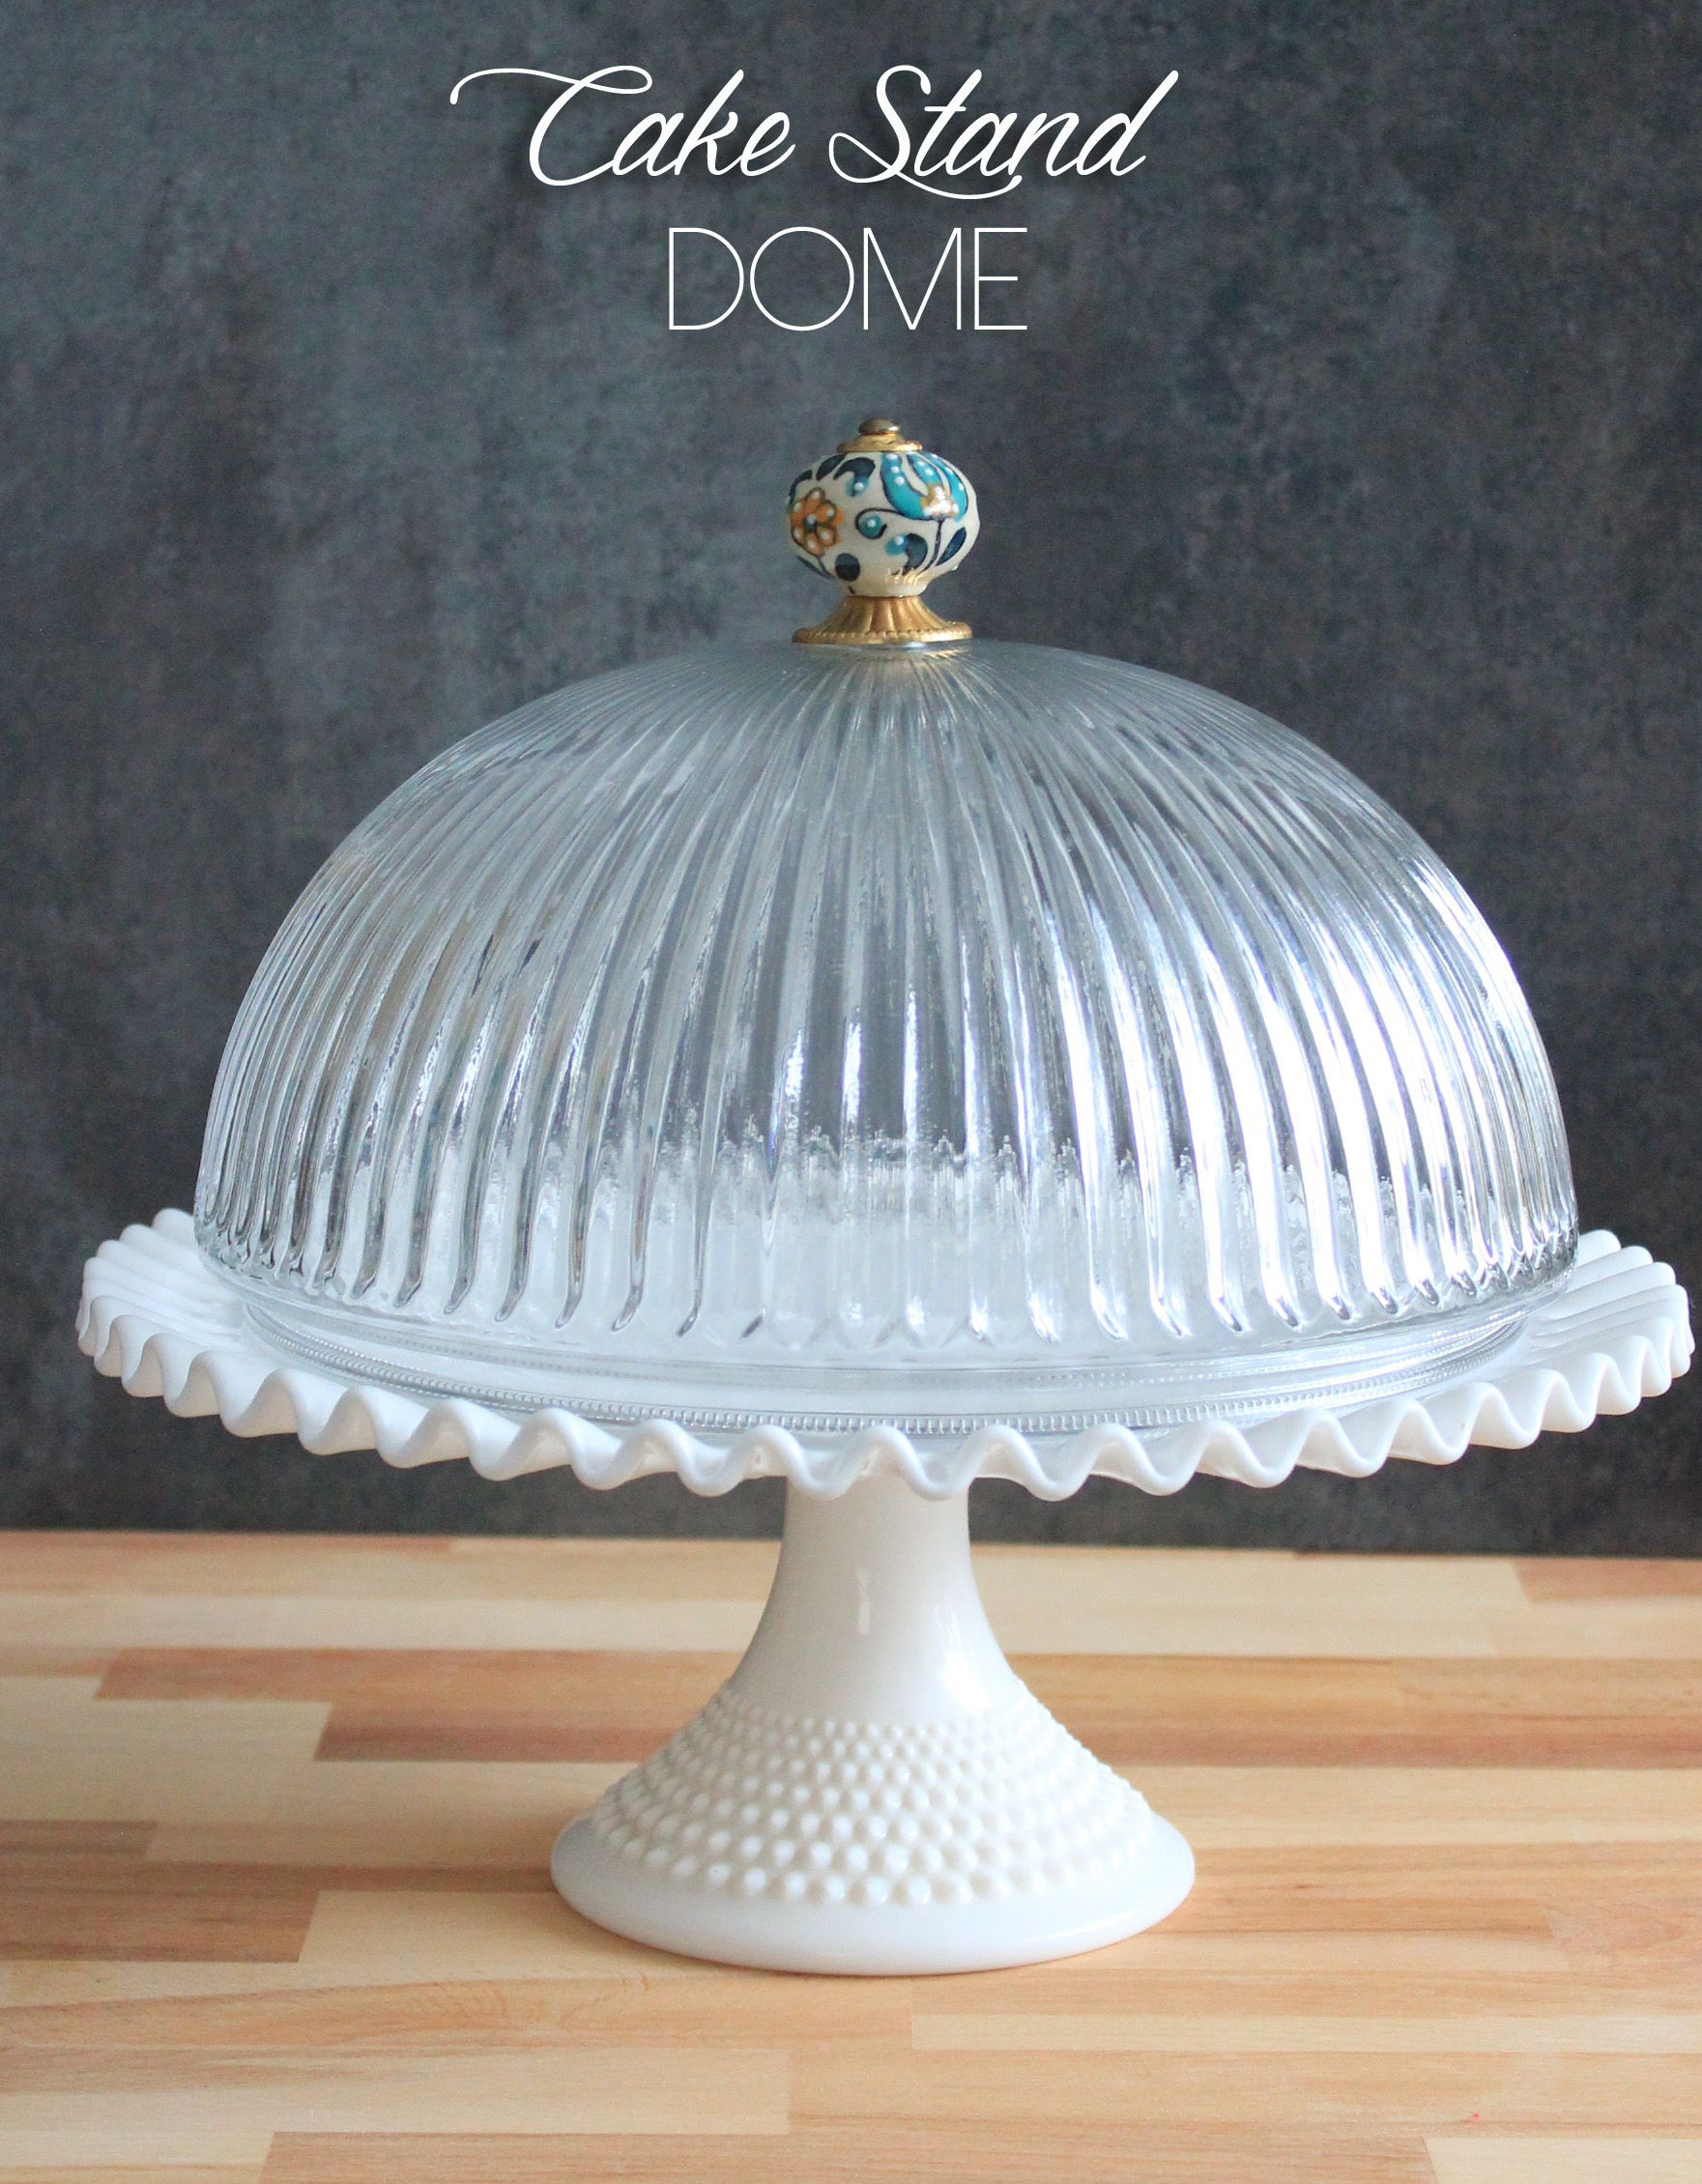 diy cake stand dome bewhatwelove. Black Bedroom Furniture Sets. Home Design Ideas